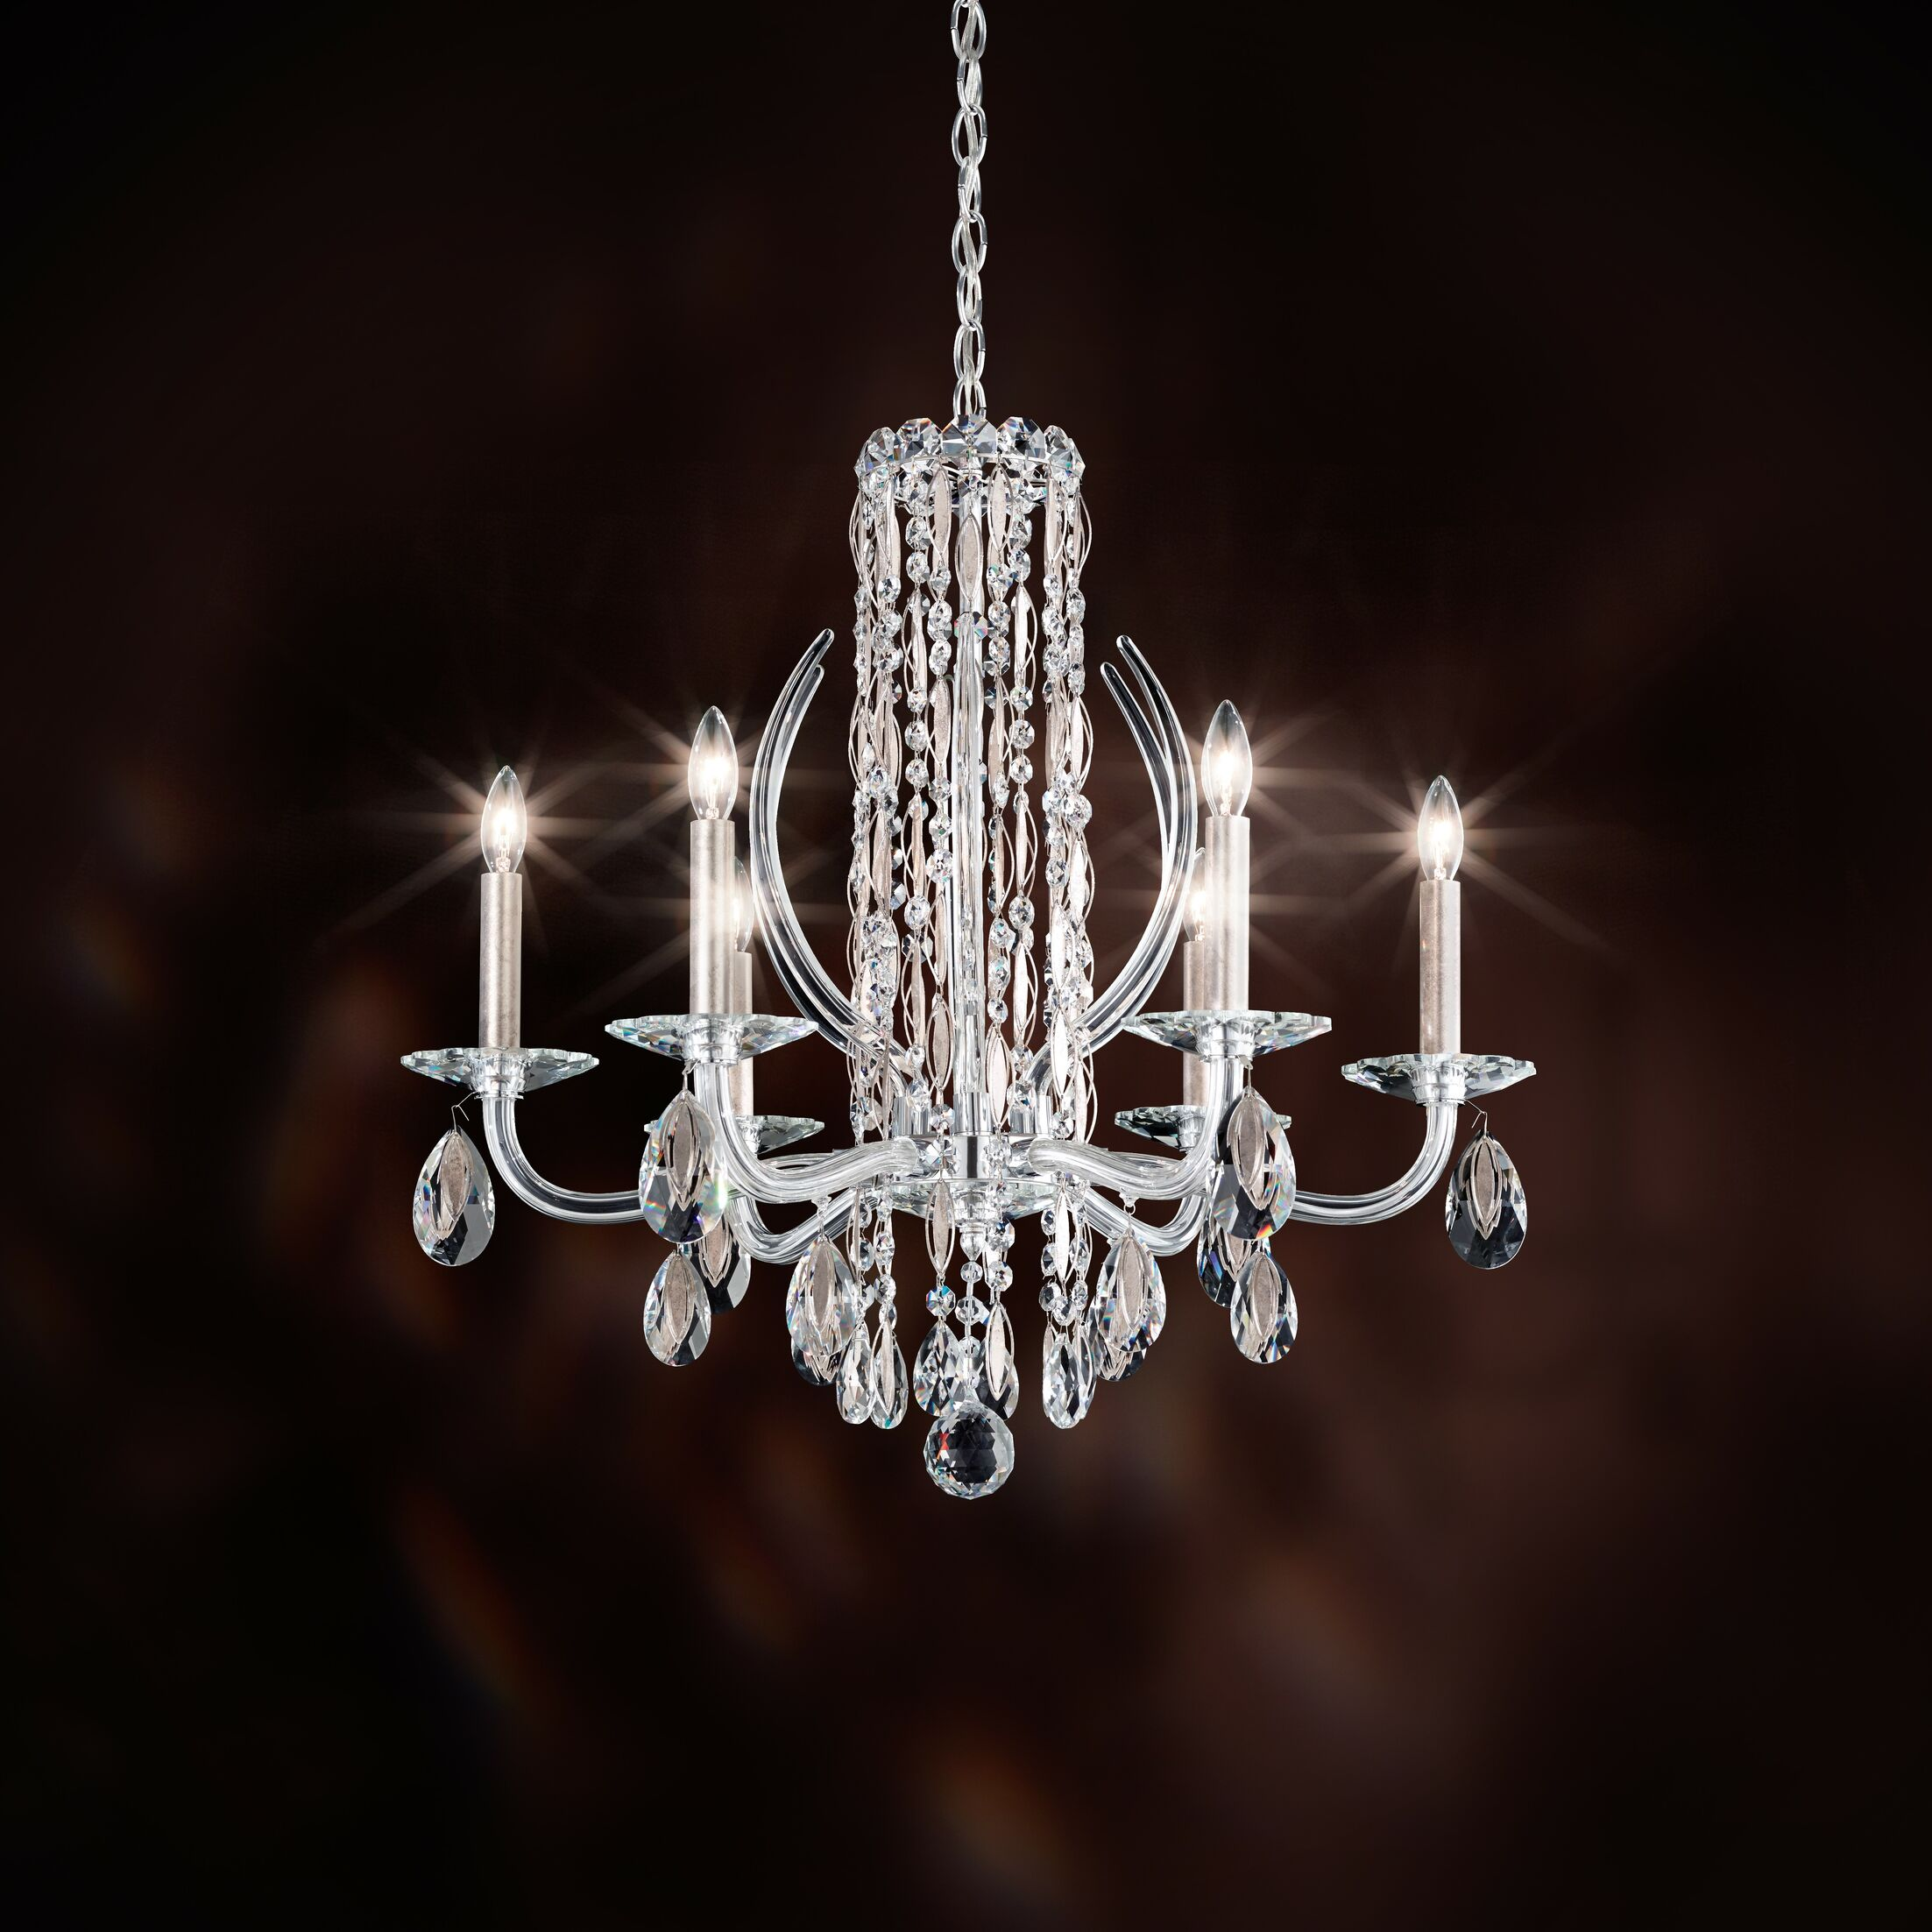 Sarella 6-Light Chandelier Finish: Polished Stainless Steel, Crystal: Spectra Crystal Clear